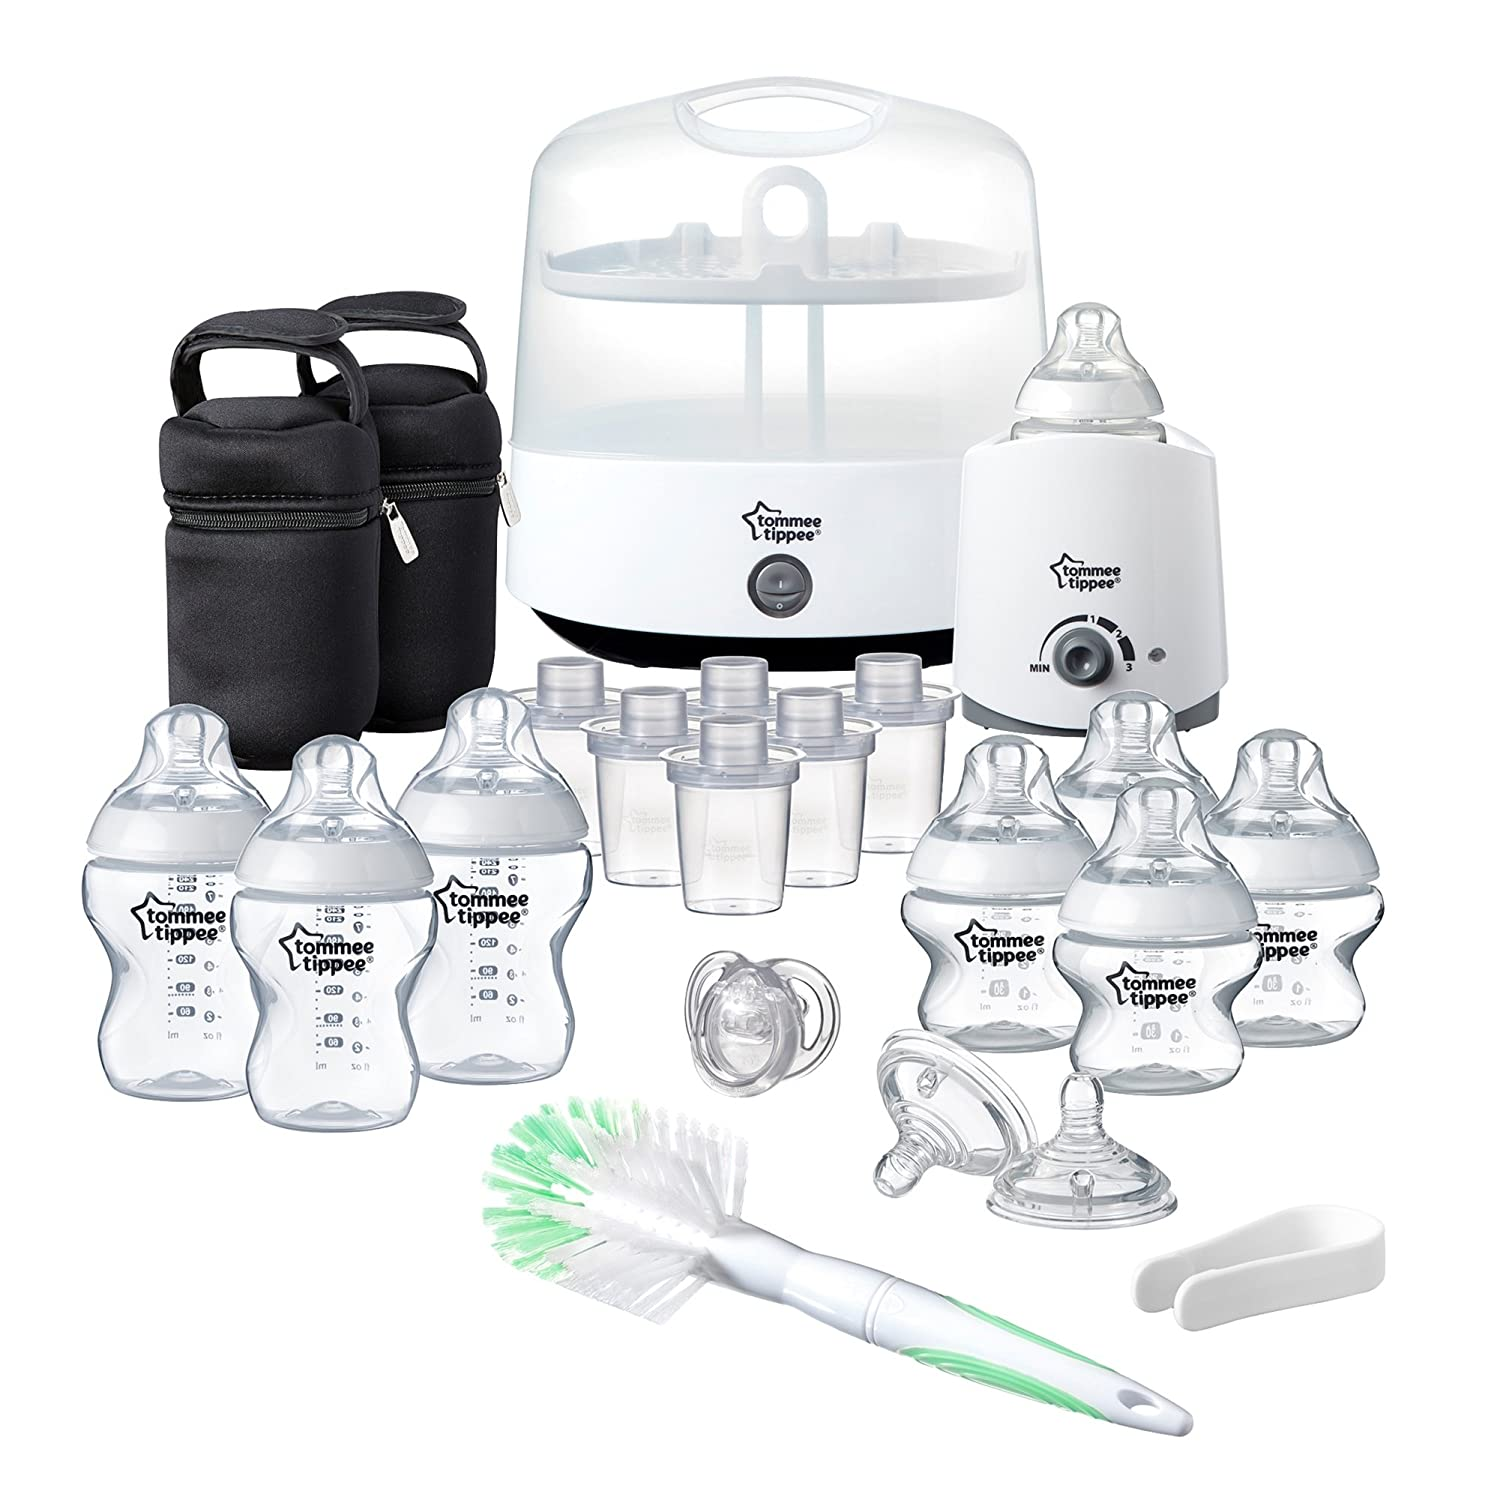 Tommee Tippee Closer to Nature Complete Feeding Set, Blue Mayborn Group 423583